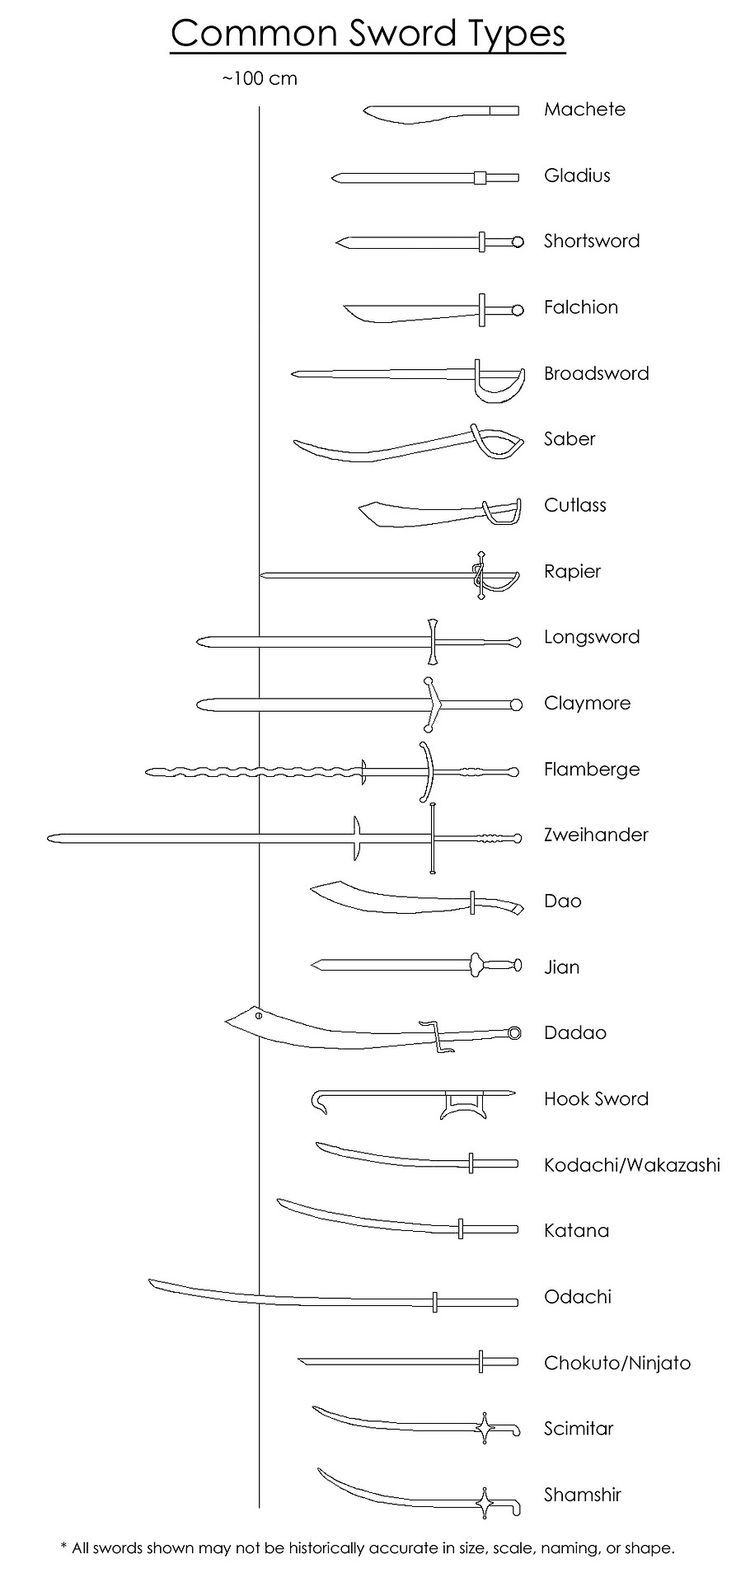 Common Sword Types- Amazing. Do You Know How Wonderfully